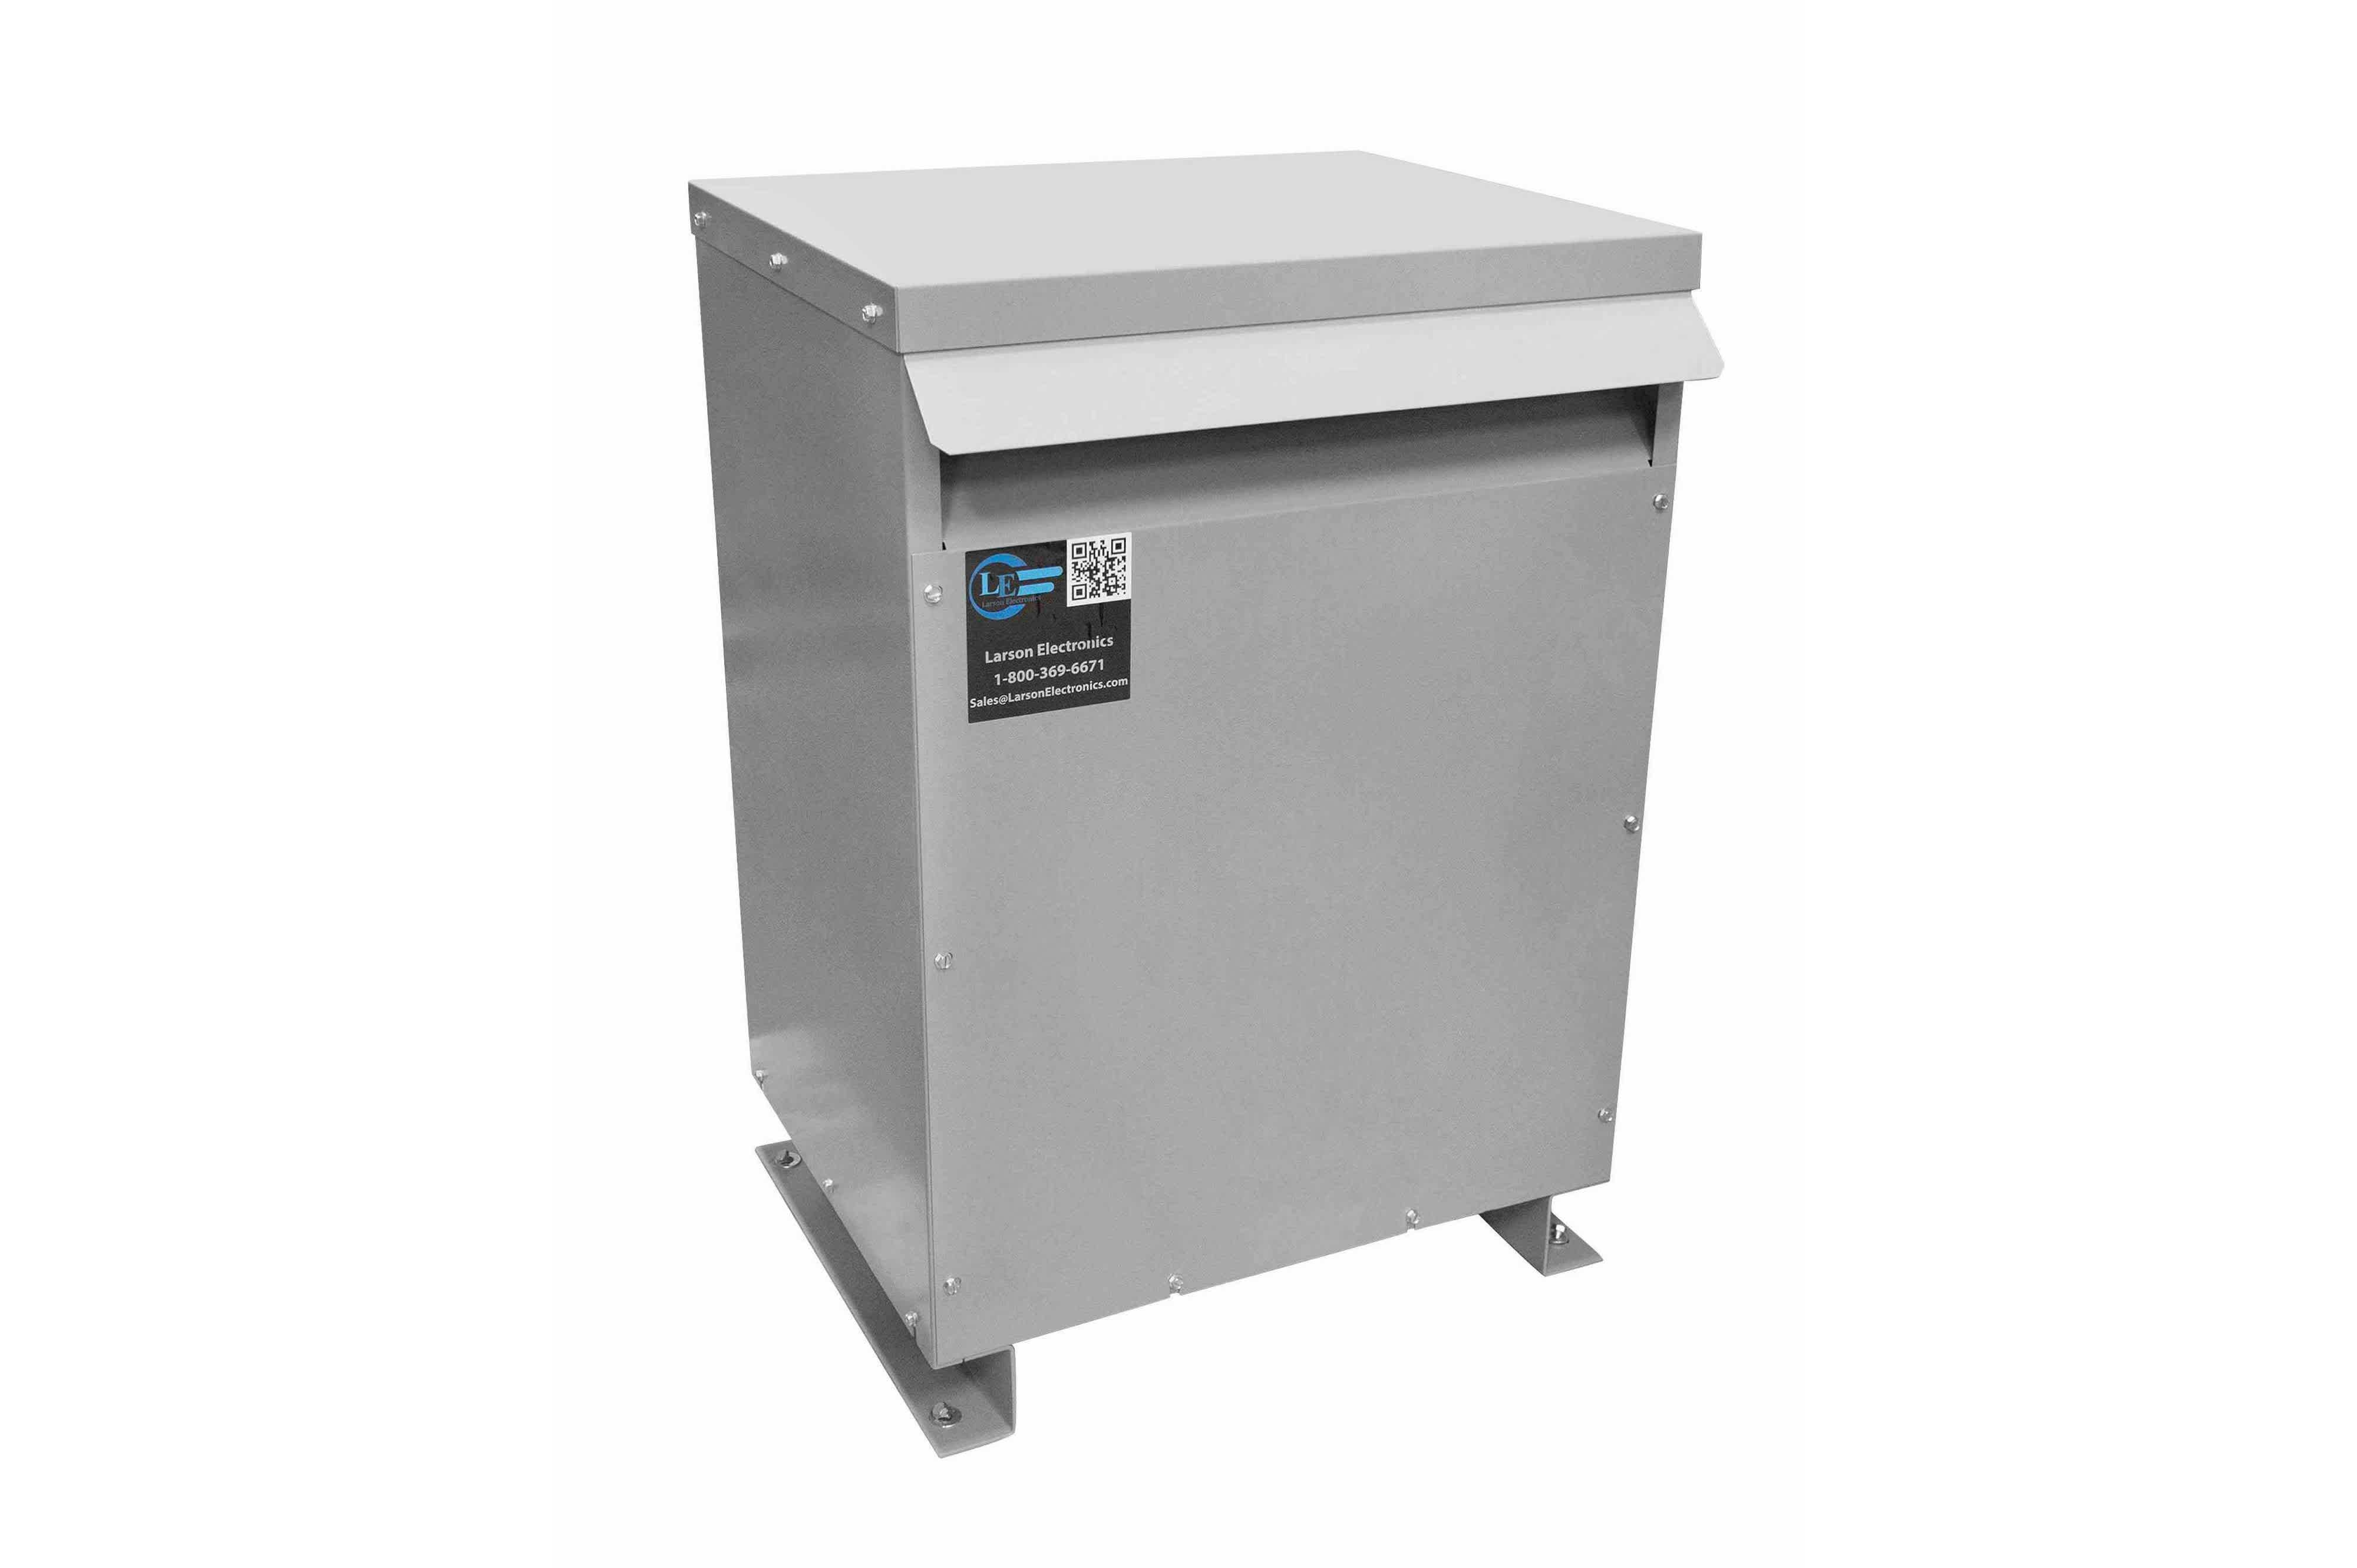 12 kVA 3PH DOE Transformer, 575V Delta Primary, 380Y/220 Wye-N Secondary, N3R, Ventilated, 60 Hz